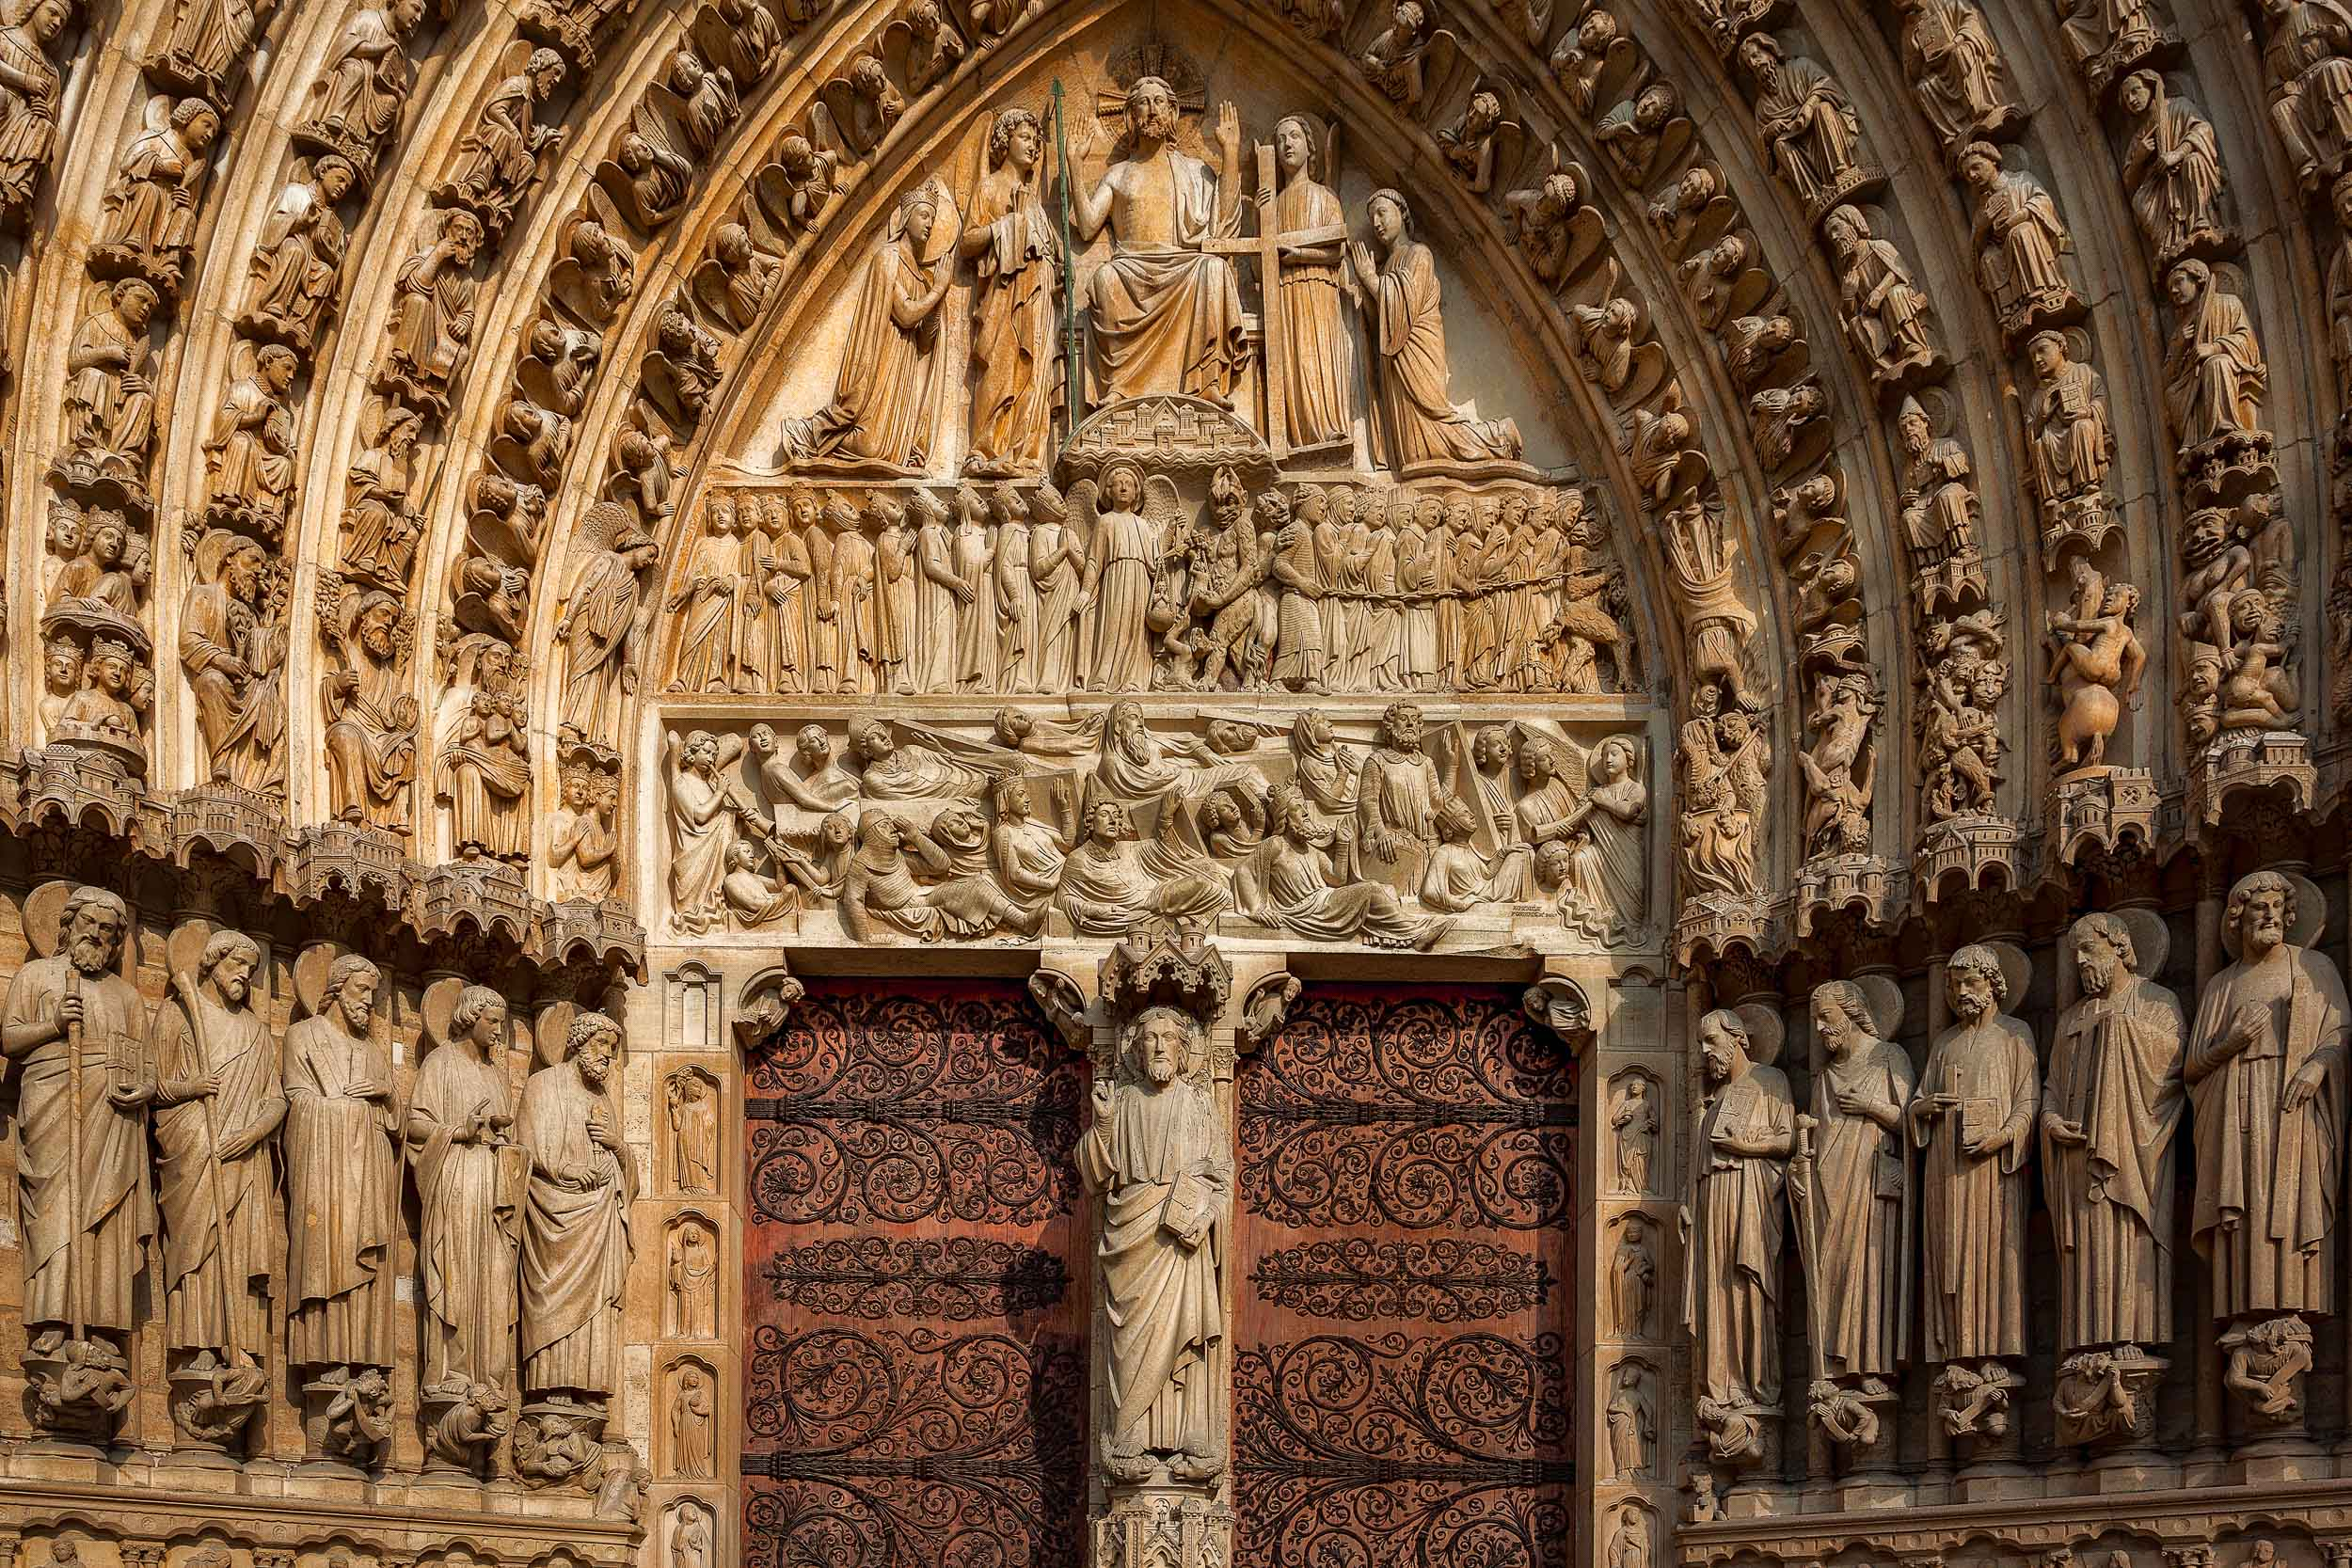 Intricately    carved statues   , under late afternoon light, frame an entrance to the spectacular    Notre Dame Cathedral    in Paris, France.